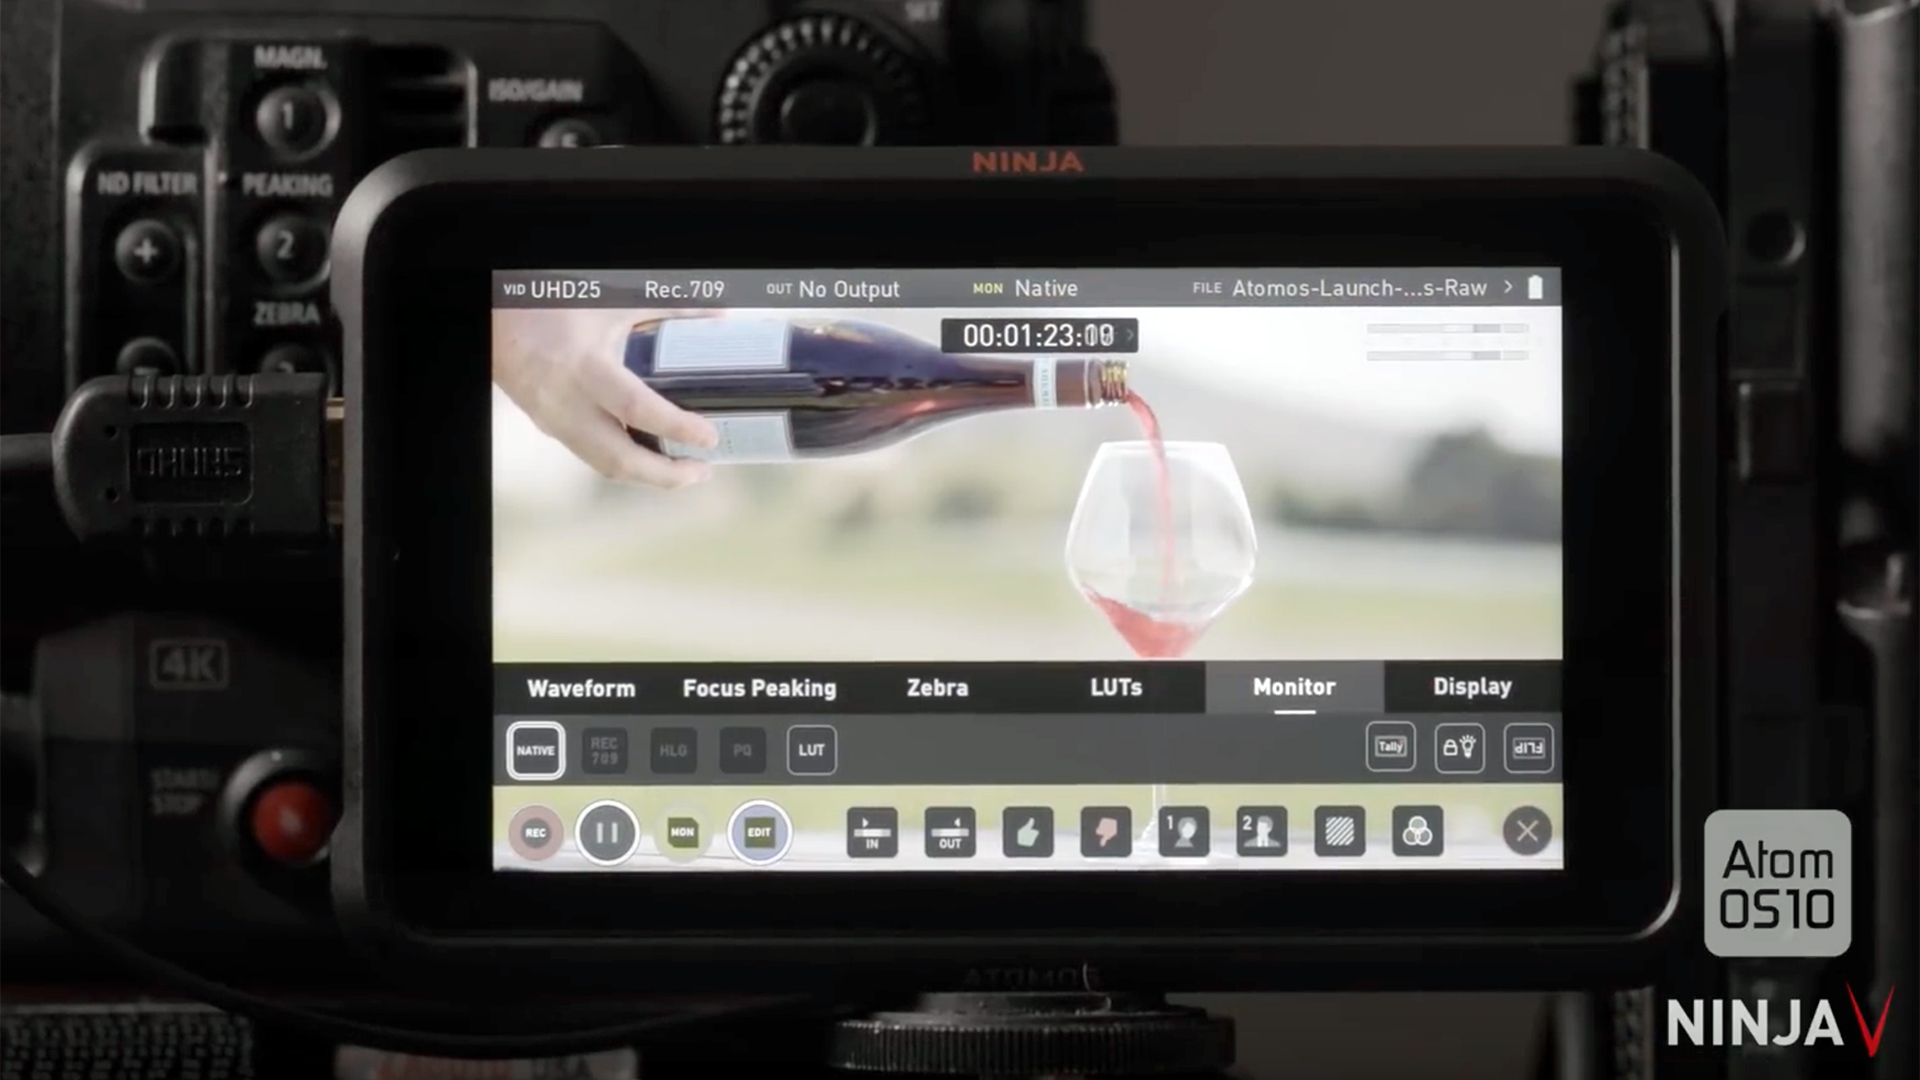 AtomOS 10 Supercharges Your Ninja V Monitor/Recorder | Shot